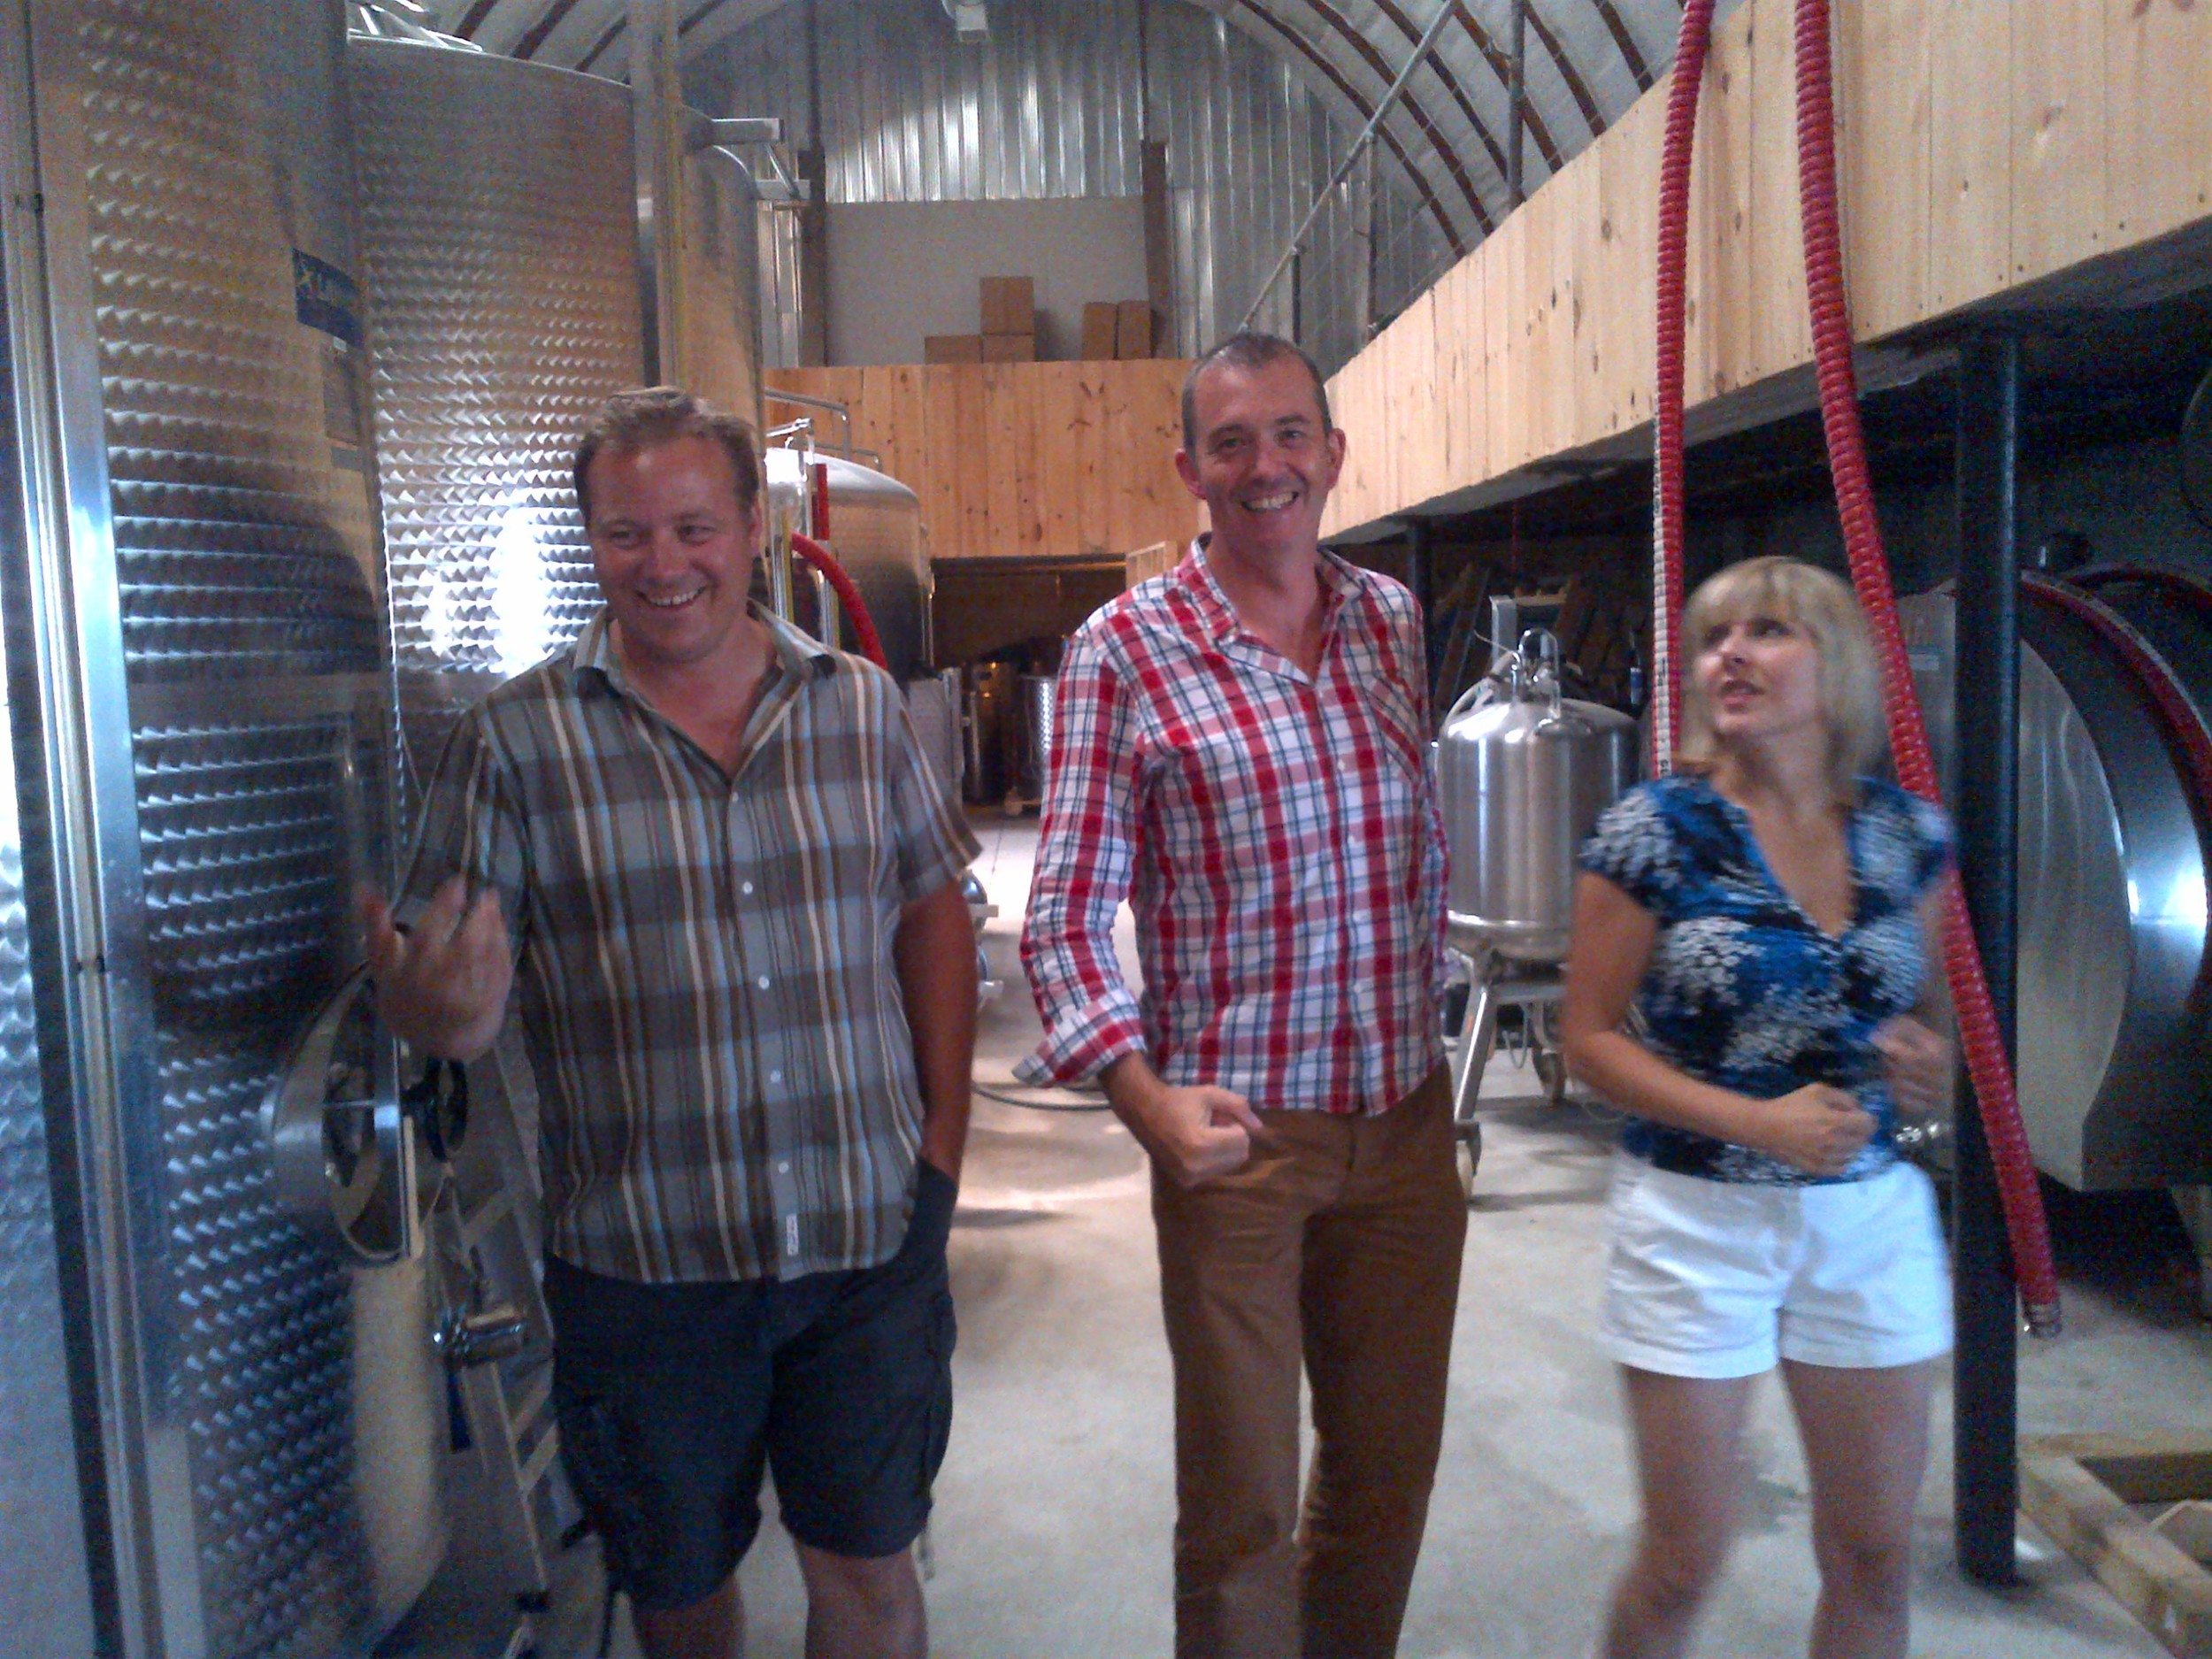 One of the international writers attending was Jamie Goode from the UK. Such an affable bloke that we took a few days to show him around Prince Edward County before the i4c started. Pictured here with Jonas and Vicki at Hinterland Wine Co after a sparkling tasting.